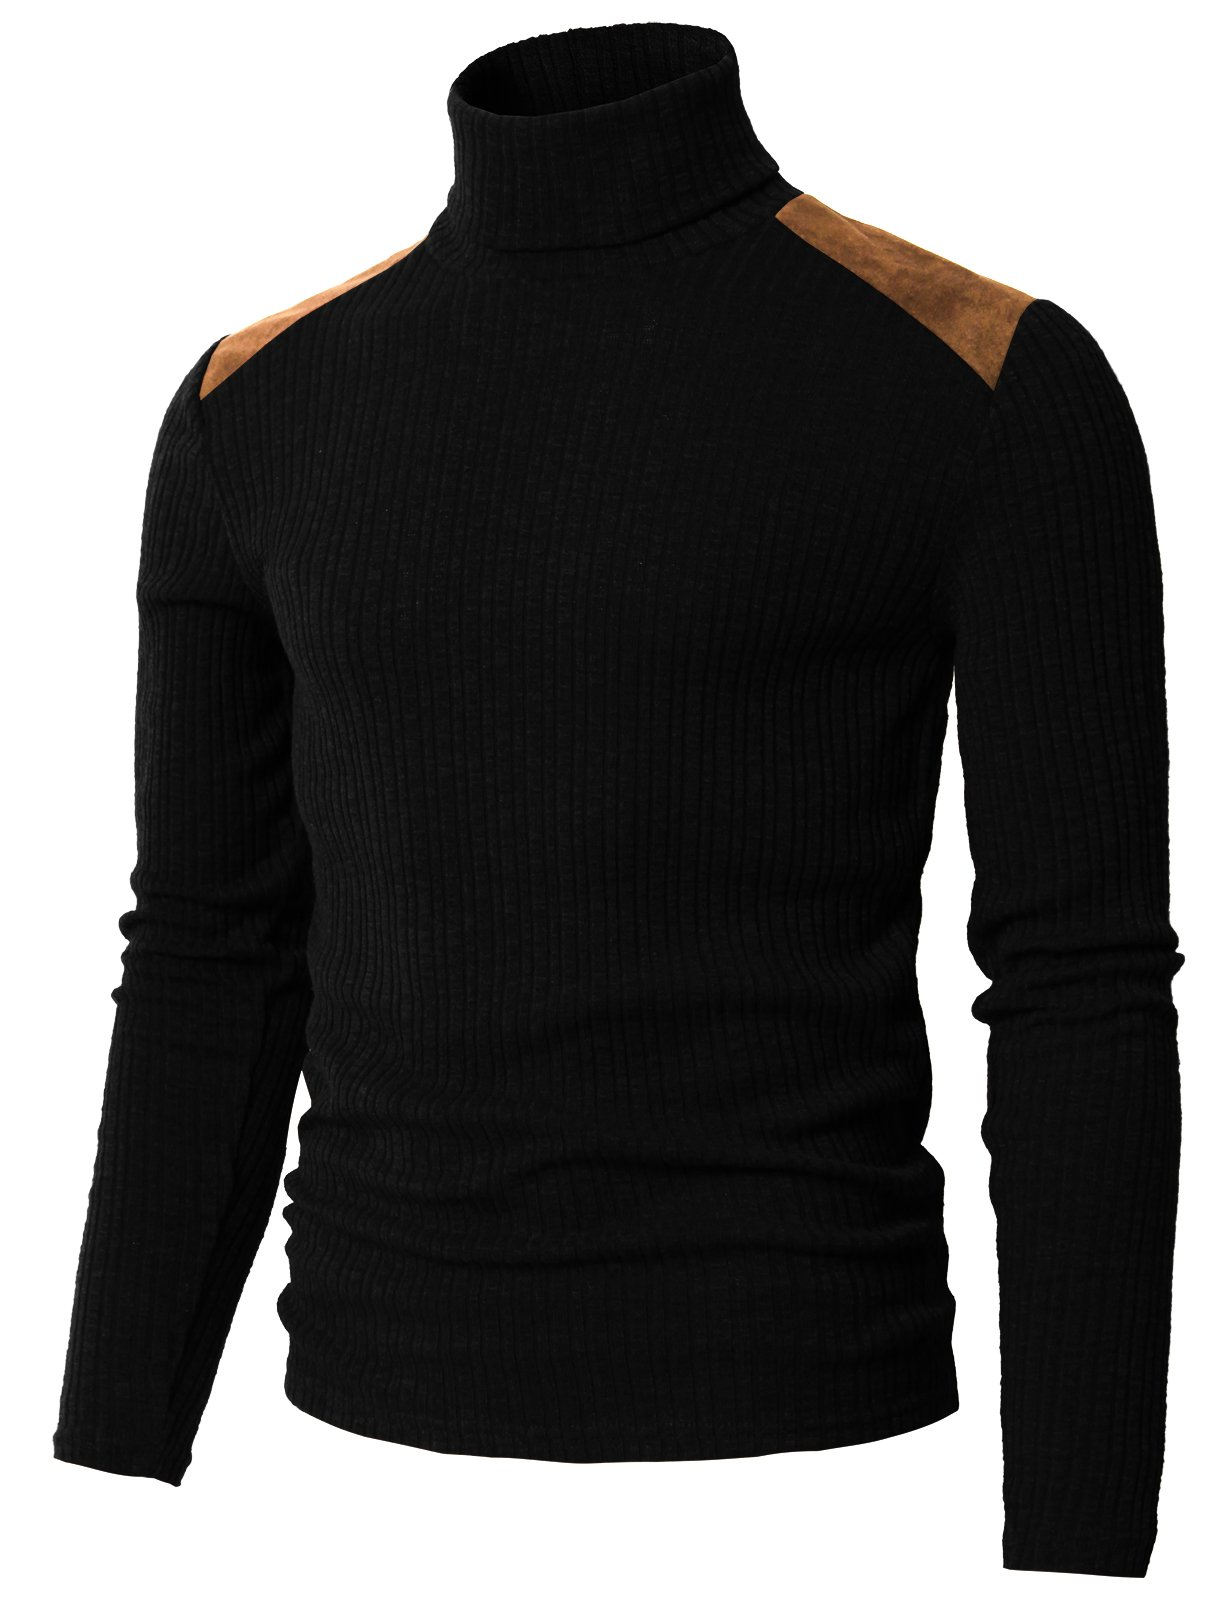 H2H Mens Slim Fit Modal Supersoft Long Sleeve Turtle Neck Top Pull Over Sweater Black US M/Asia L (CMTTL099) by H2H